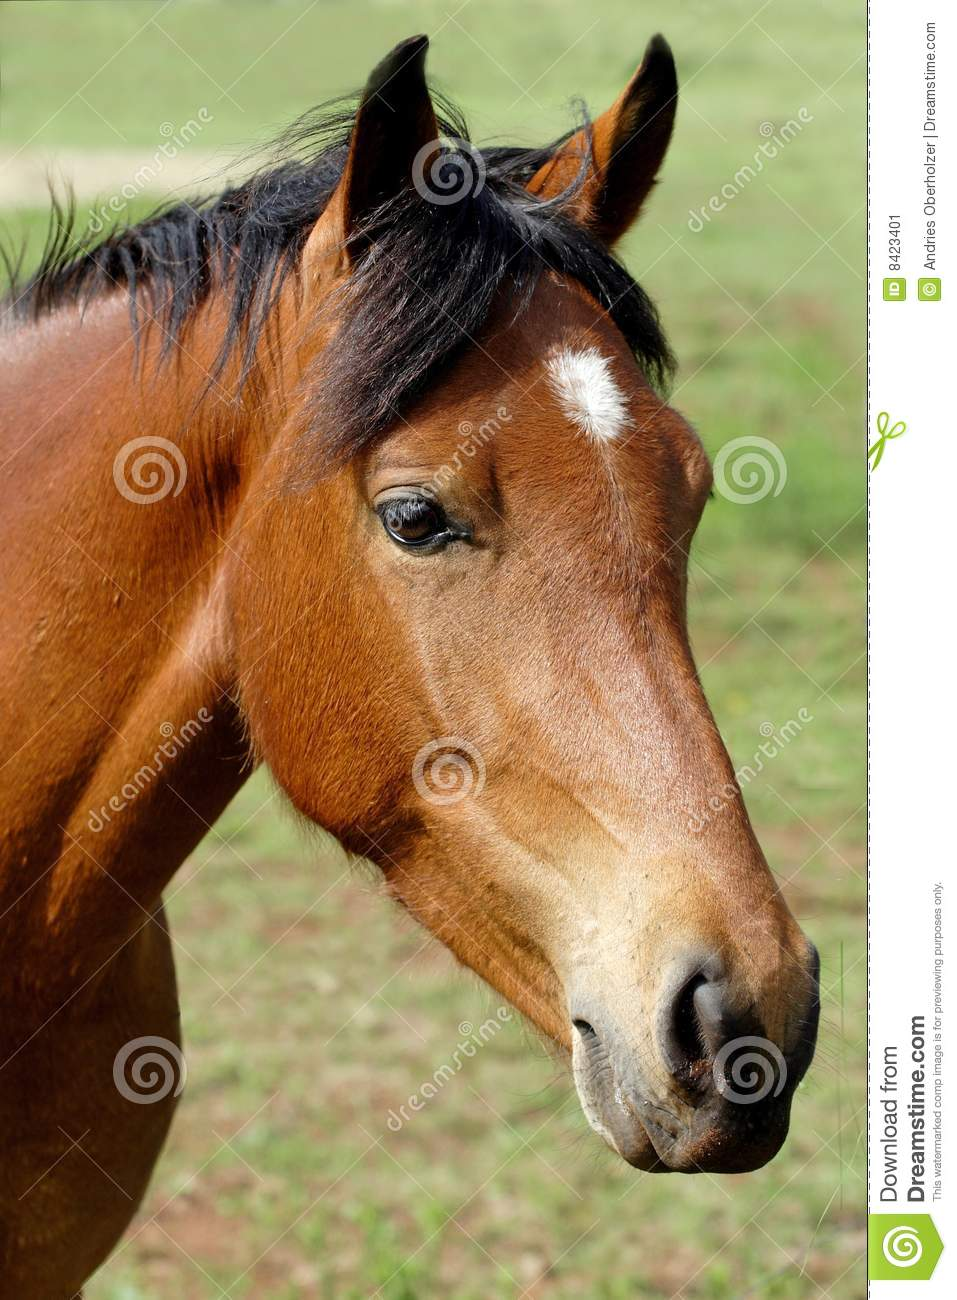 Brown horse with white spot